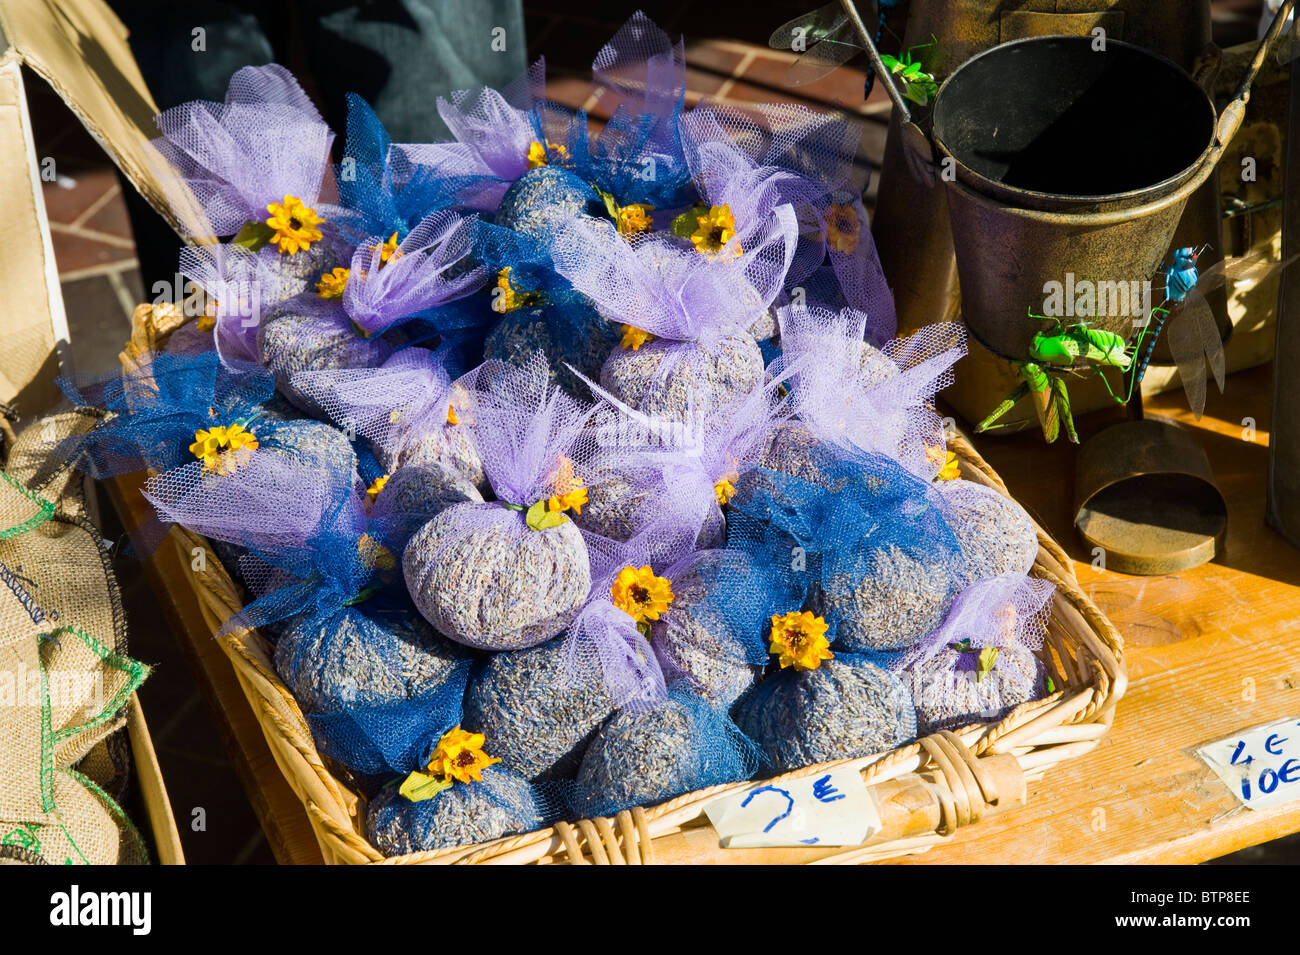 Lavender, Provence Herbs for sale, Market in the Old Town, Nice, Cote d'Azur, France - Stock Image